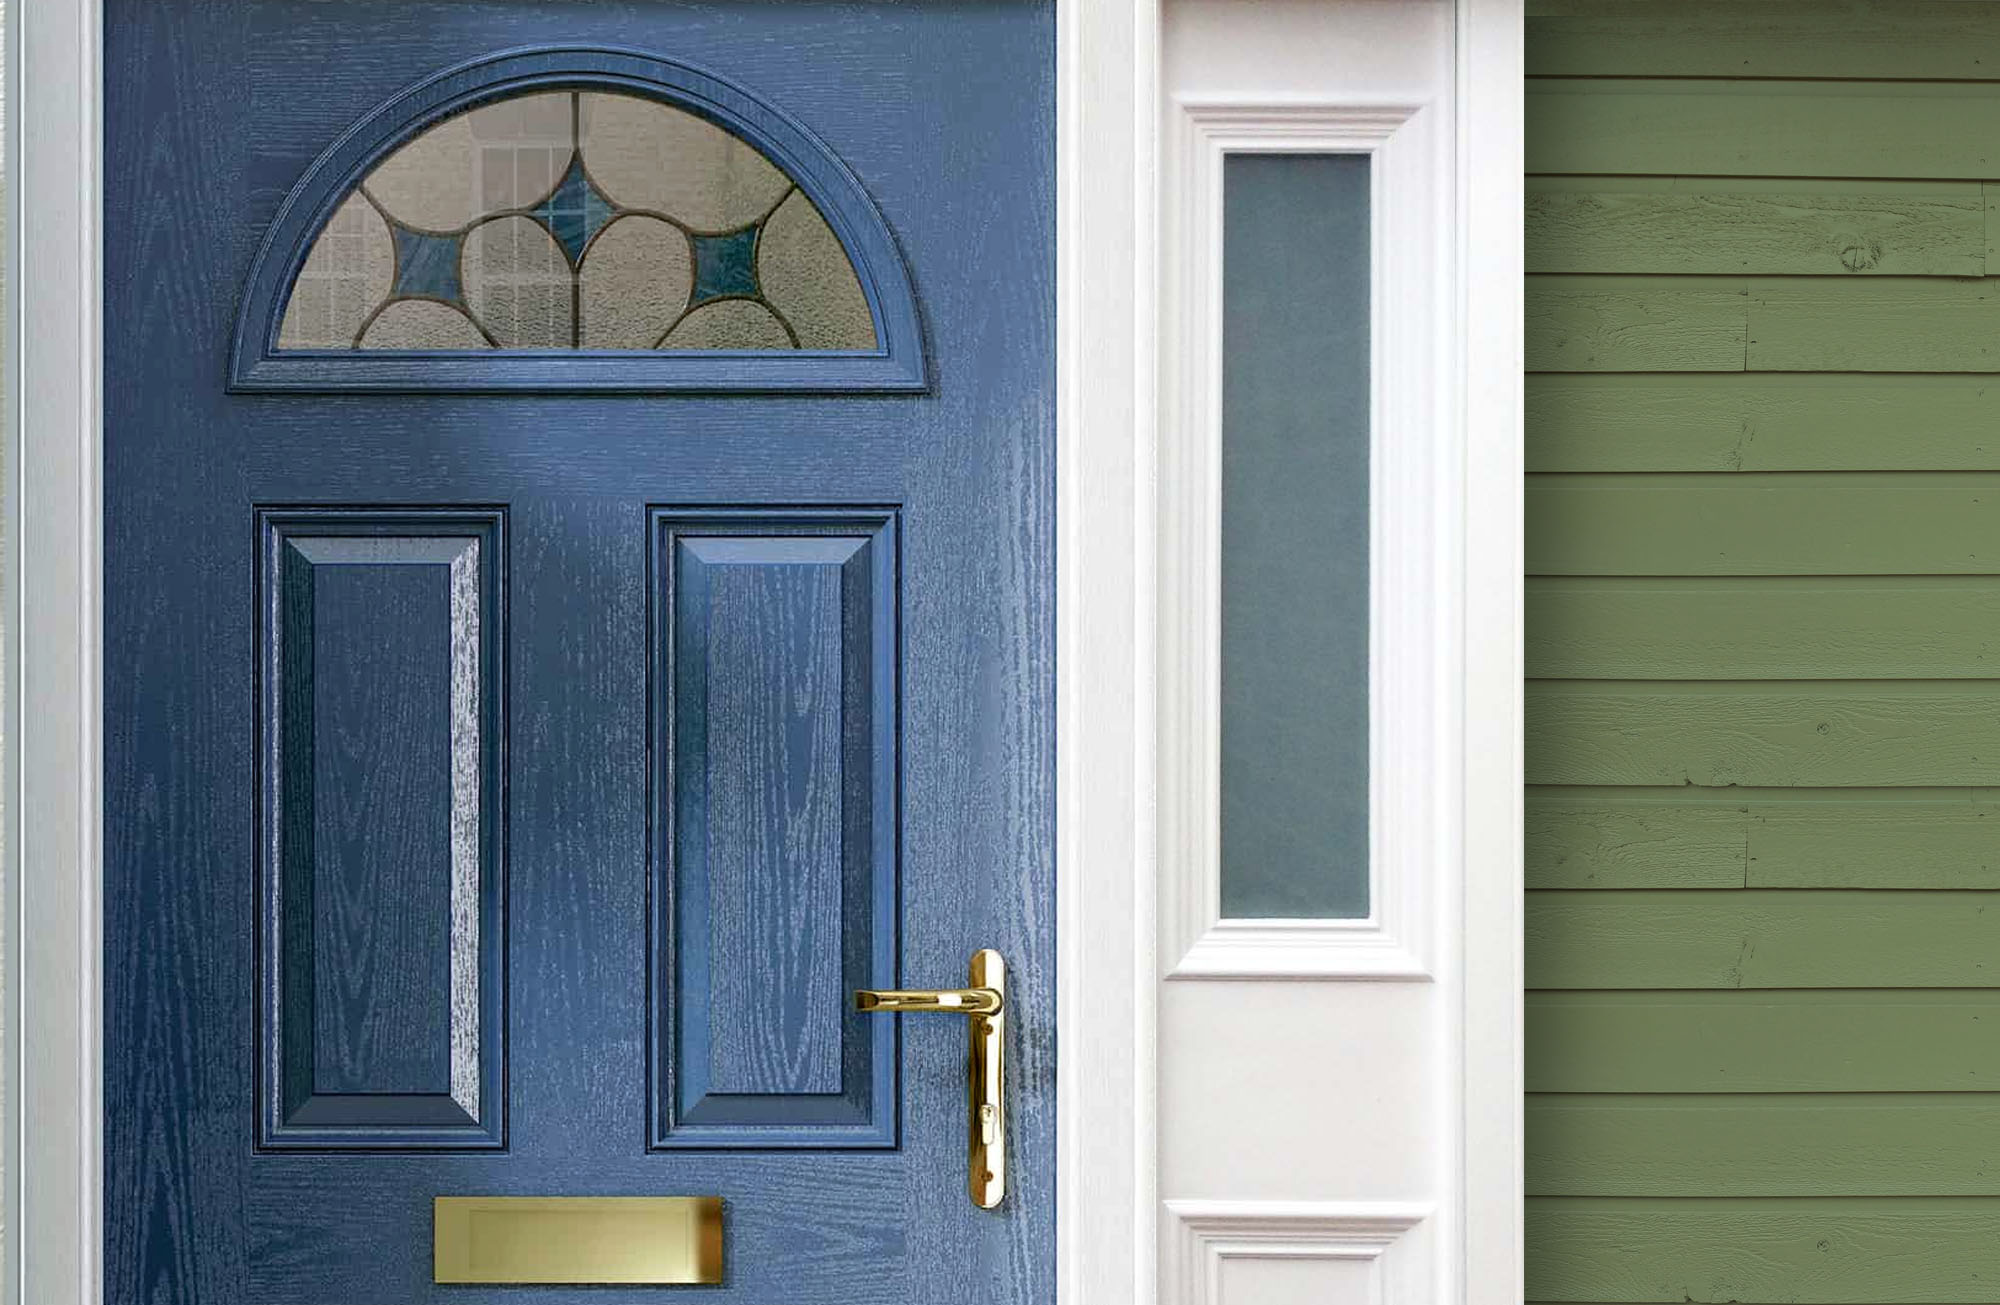 This beautiful blue home features green siding, a deep blue front door and white trim with gold hardware.